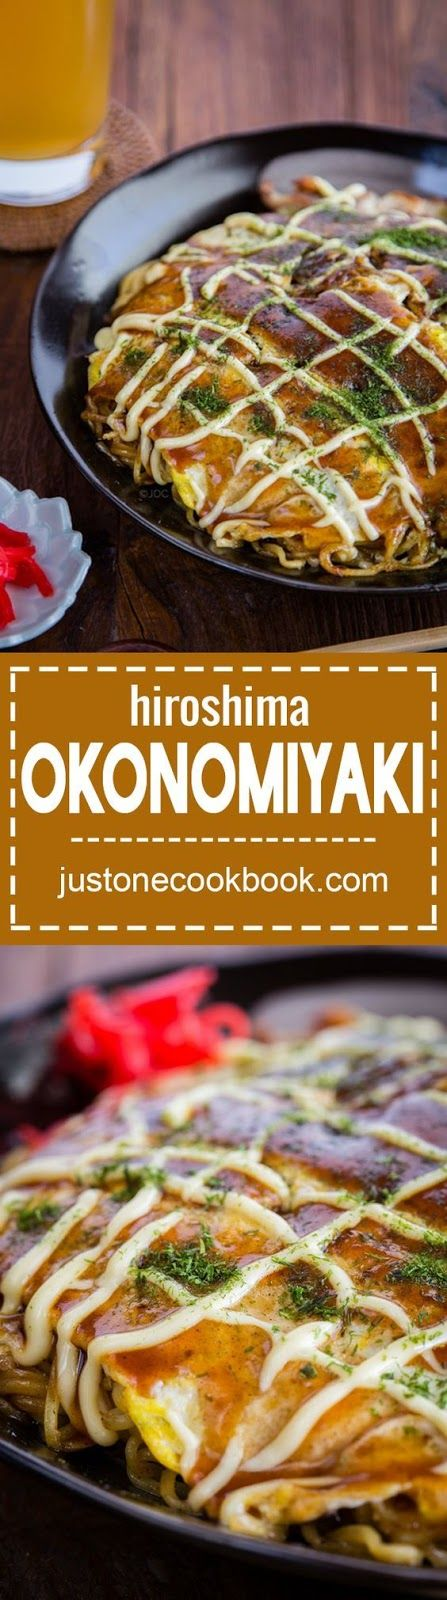 Japanese savory pancake topped with cabbage, green onion, bean sprout, noodles, and sliced pork belly, this Hiroshima Okonomiyaki is an absolute treat you can tackle at home. Watch the video tutorial for step-by-step instructions!